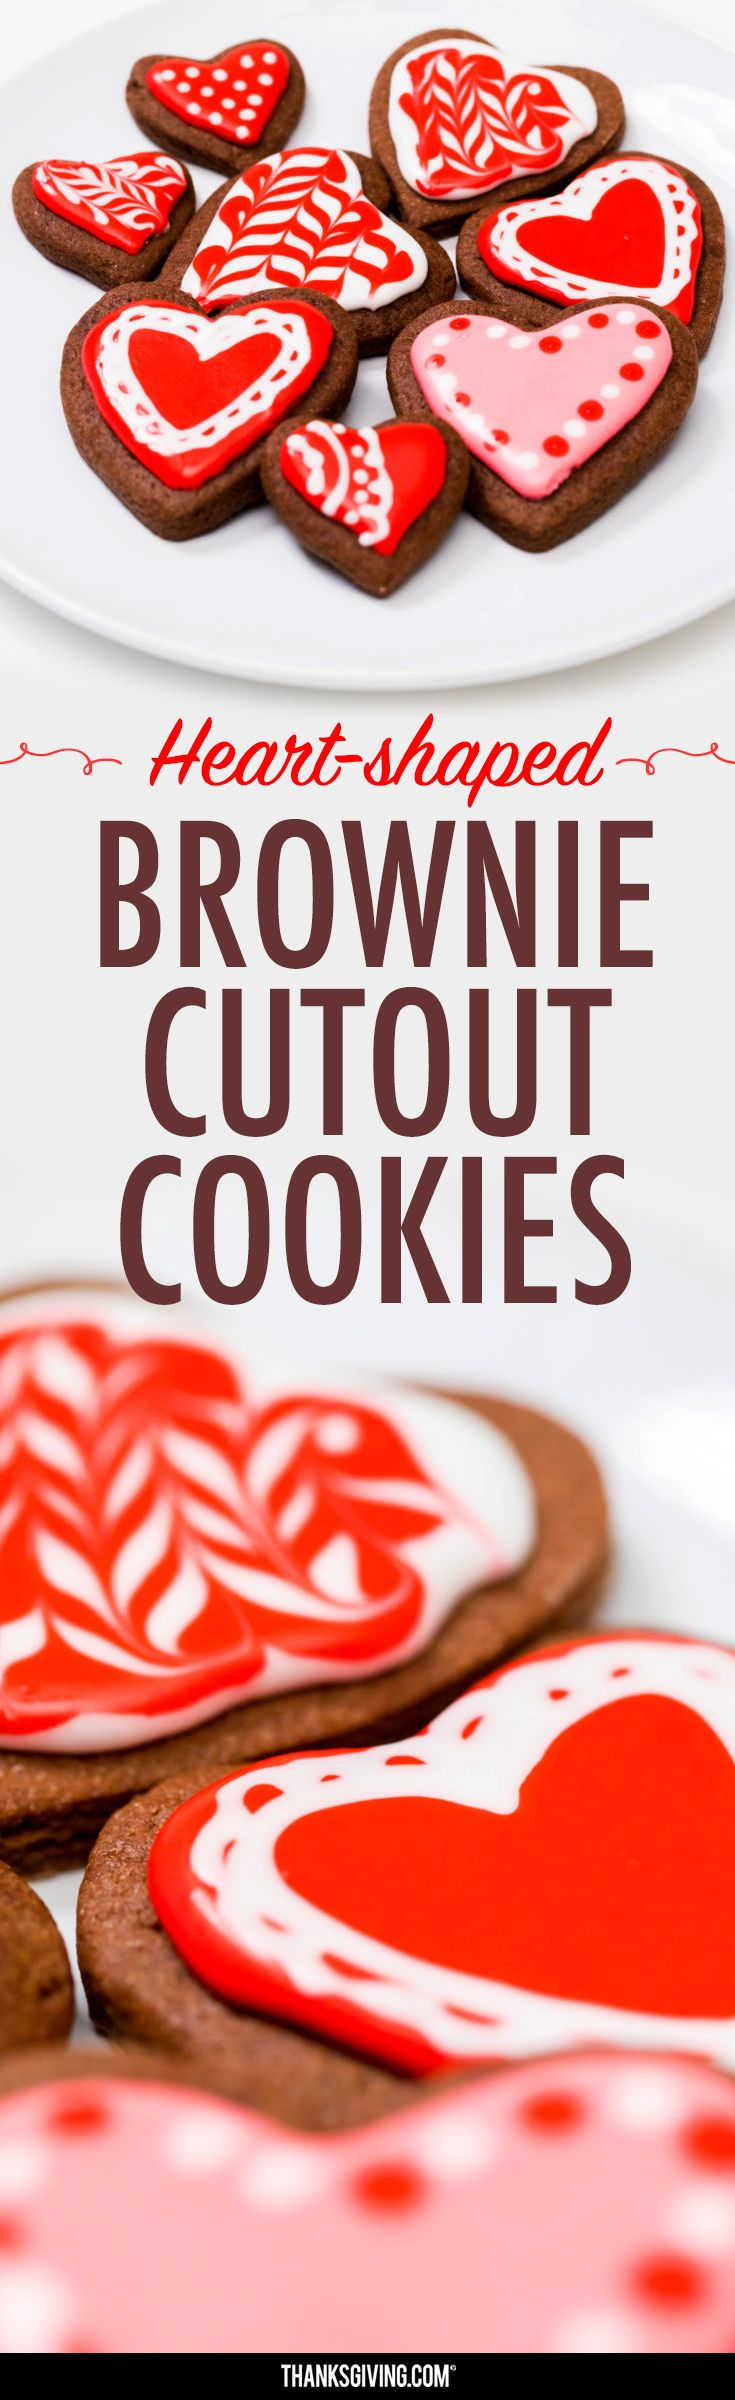 Heart-Shaped, Brownie Cut-Out Cookies for Valentine's Day - Thanksgiving.com